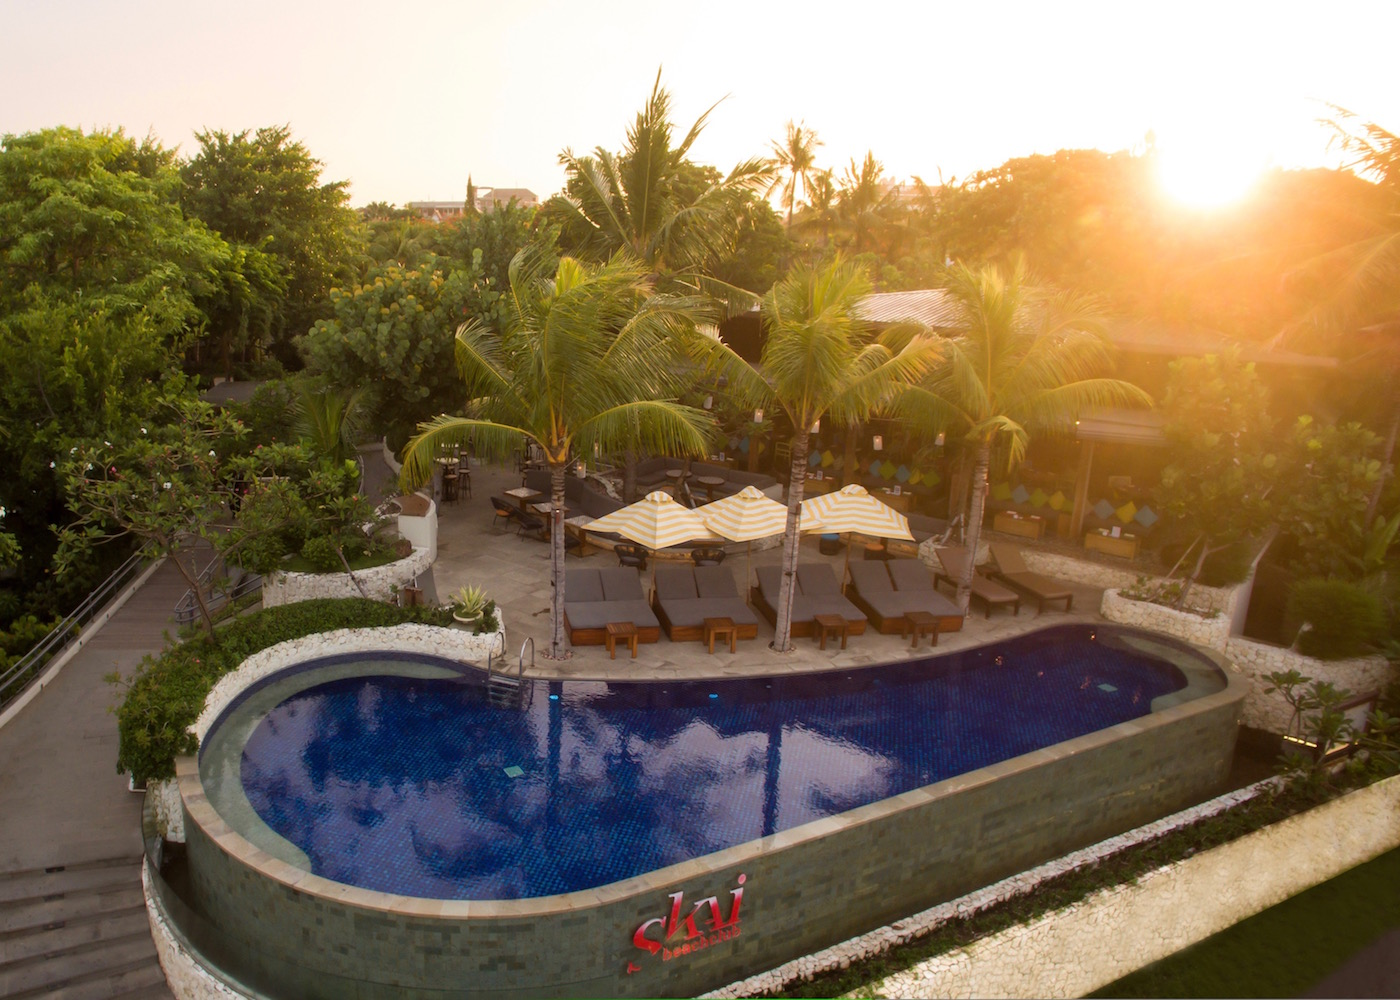 SKAI Beach Club at sunset Legian Bali Indonesia